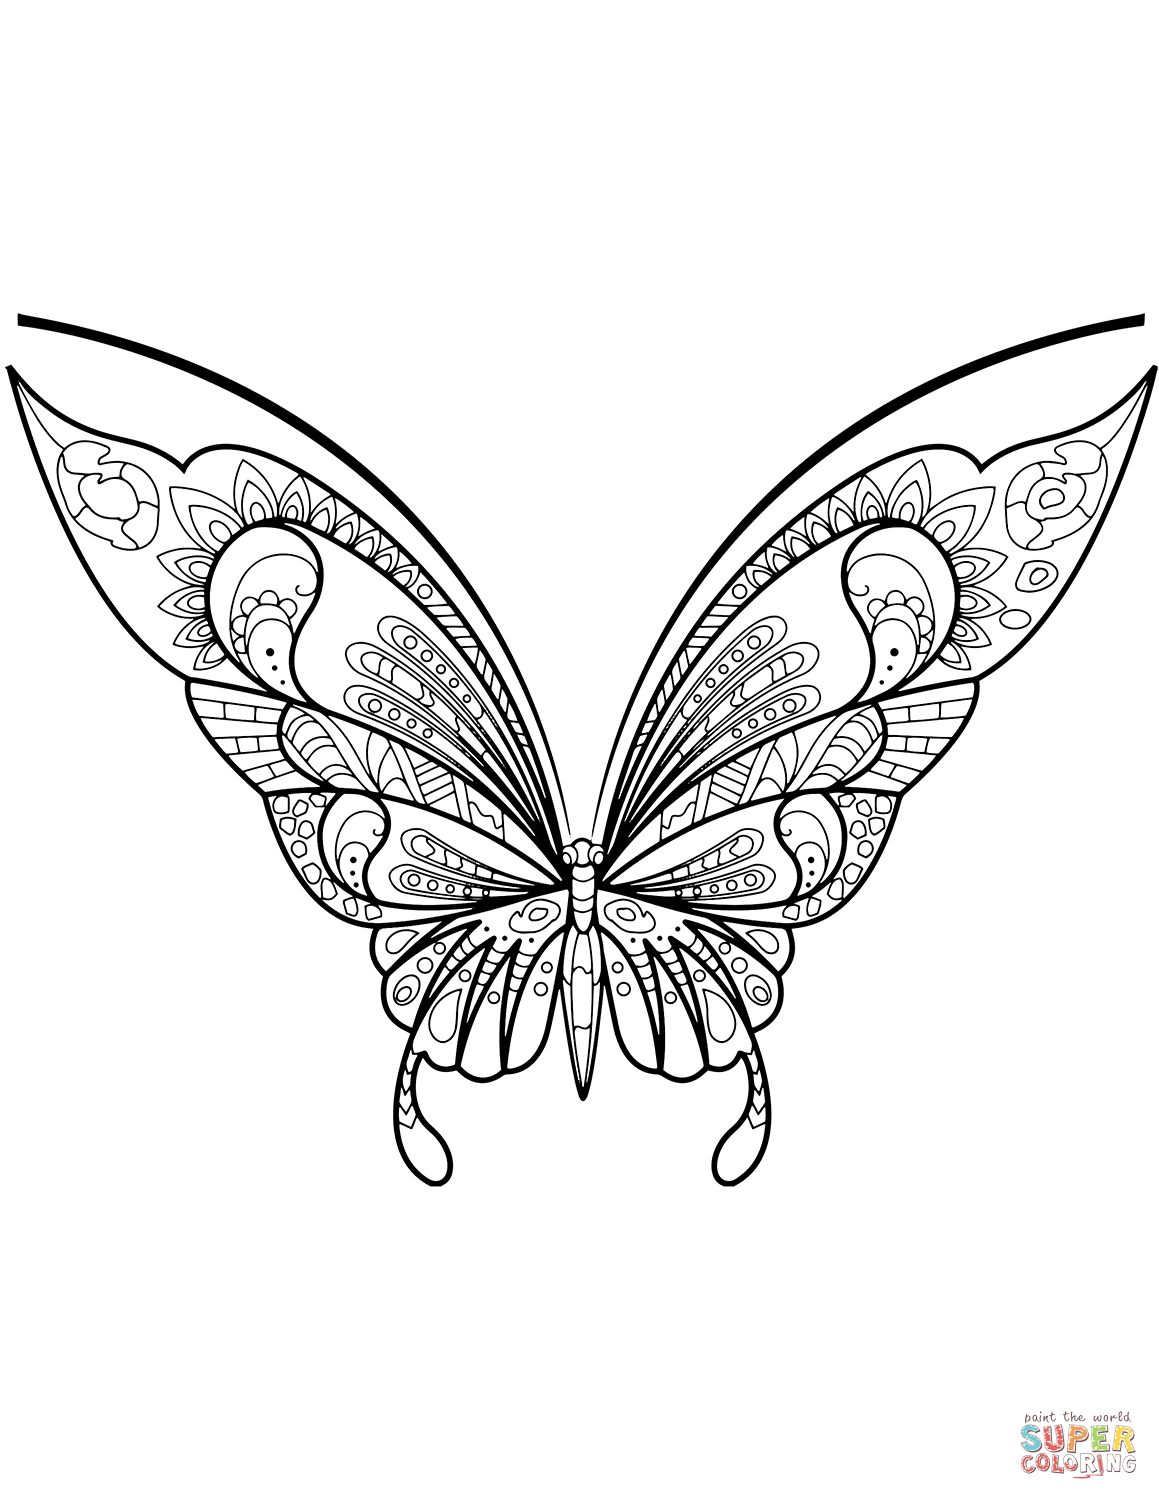 zentangle butterfly coloring page | free printable